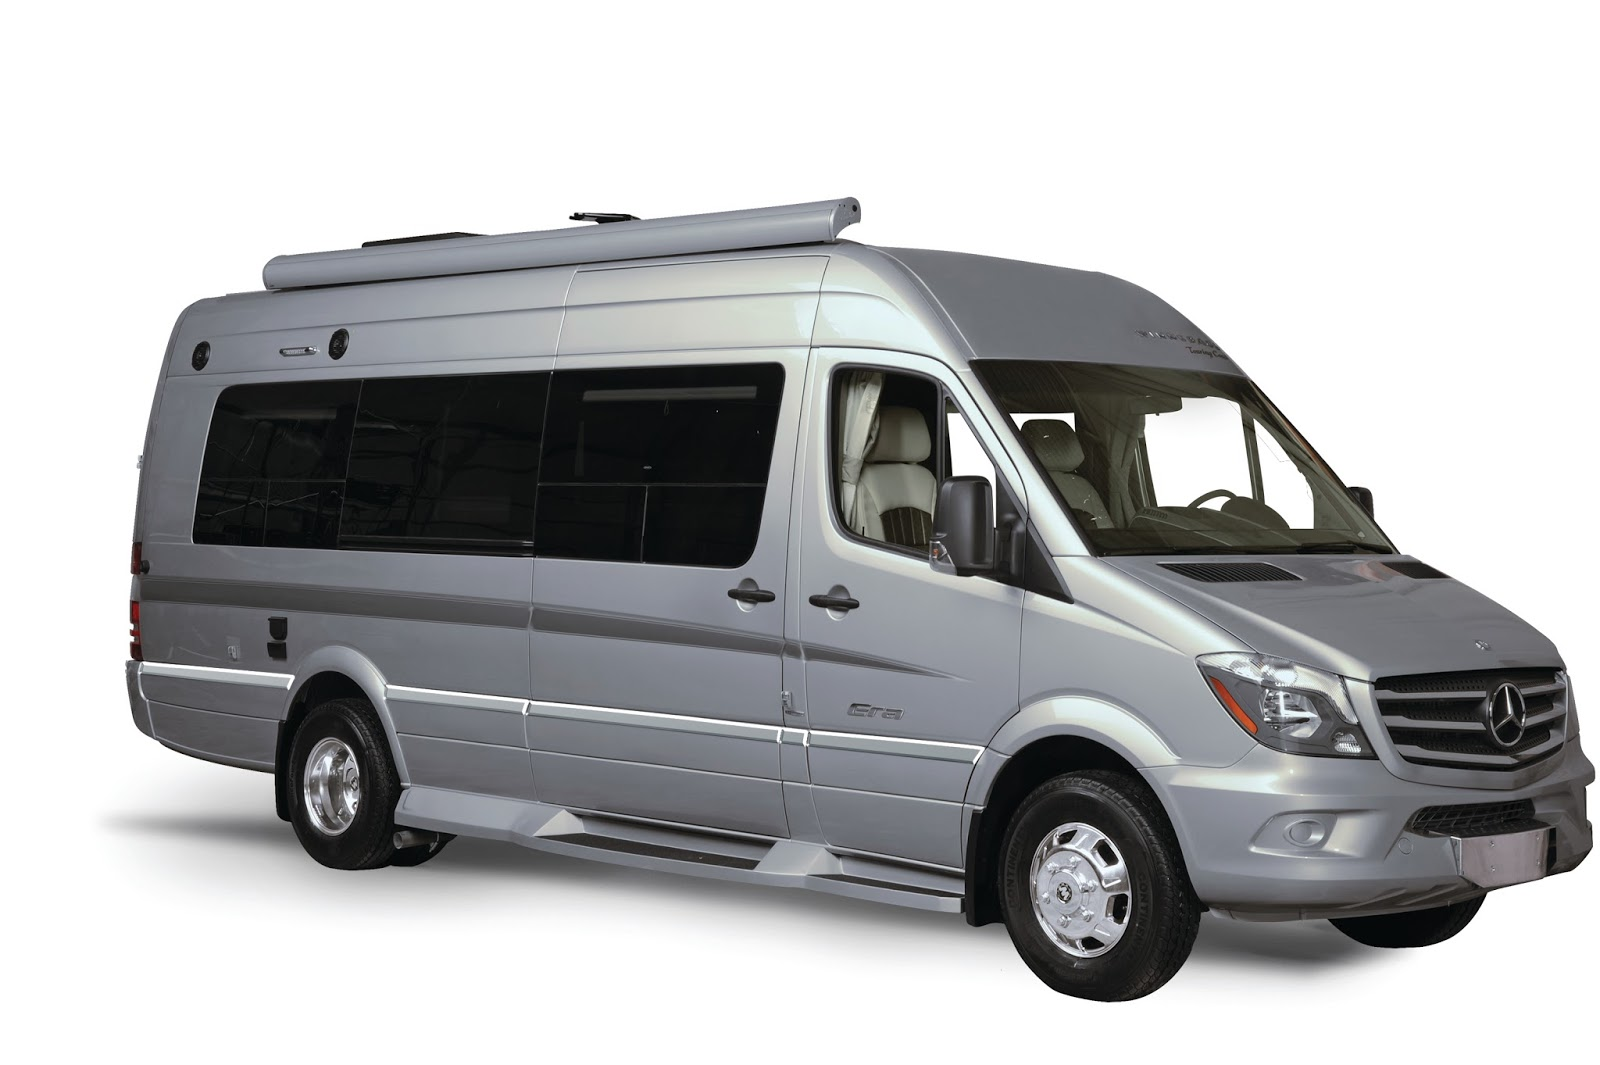 Winnebago Takes Top Spot in Class B Van Sales For the Year - RV Trader Insider